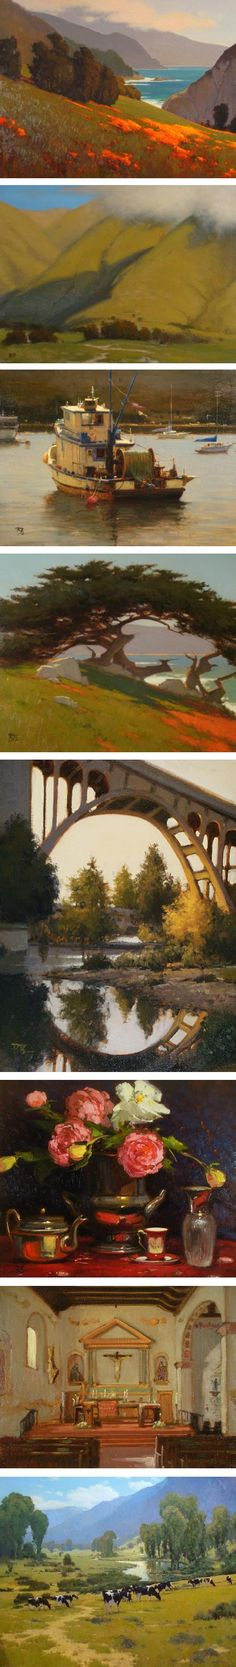 Brian Blood paintings of California